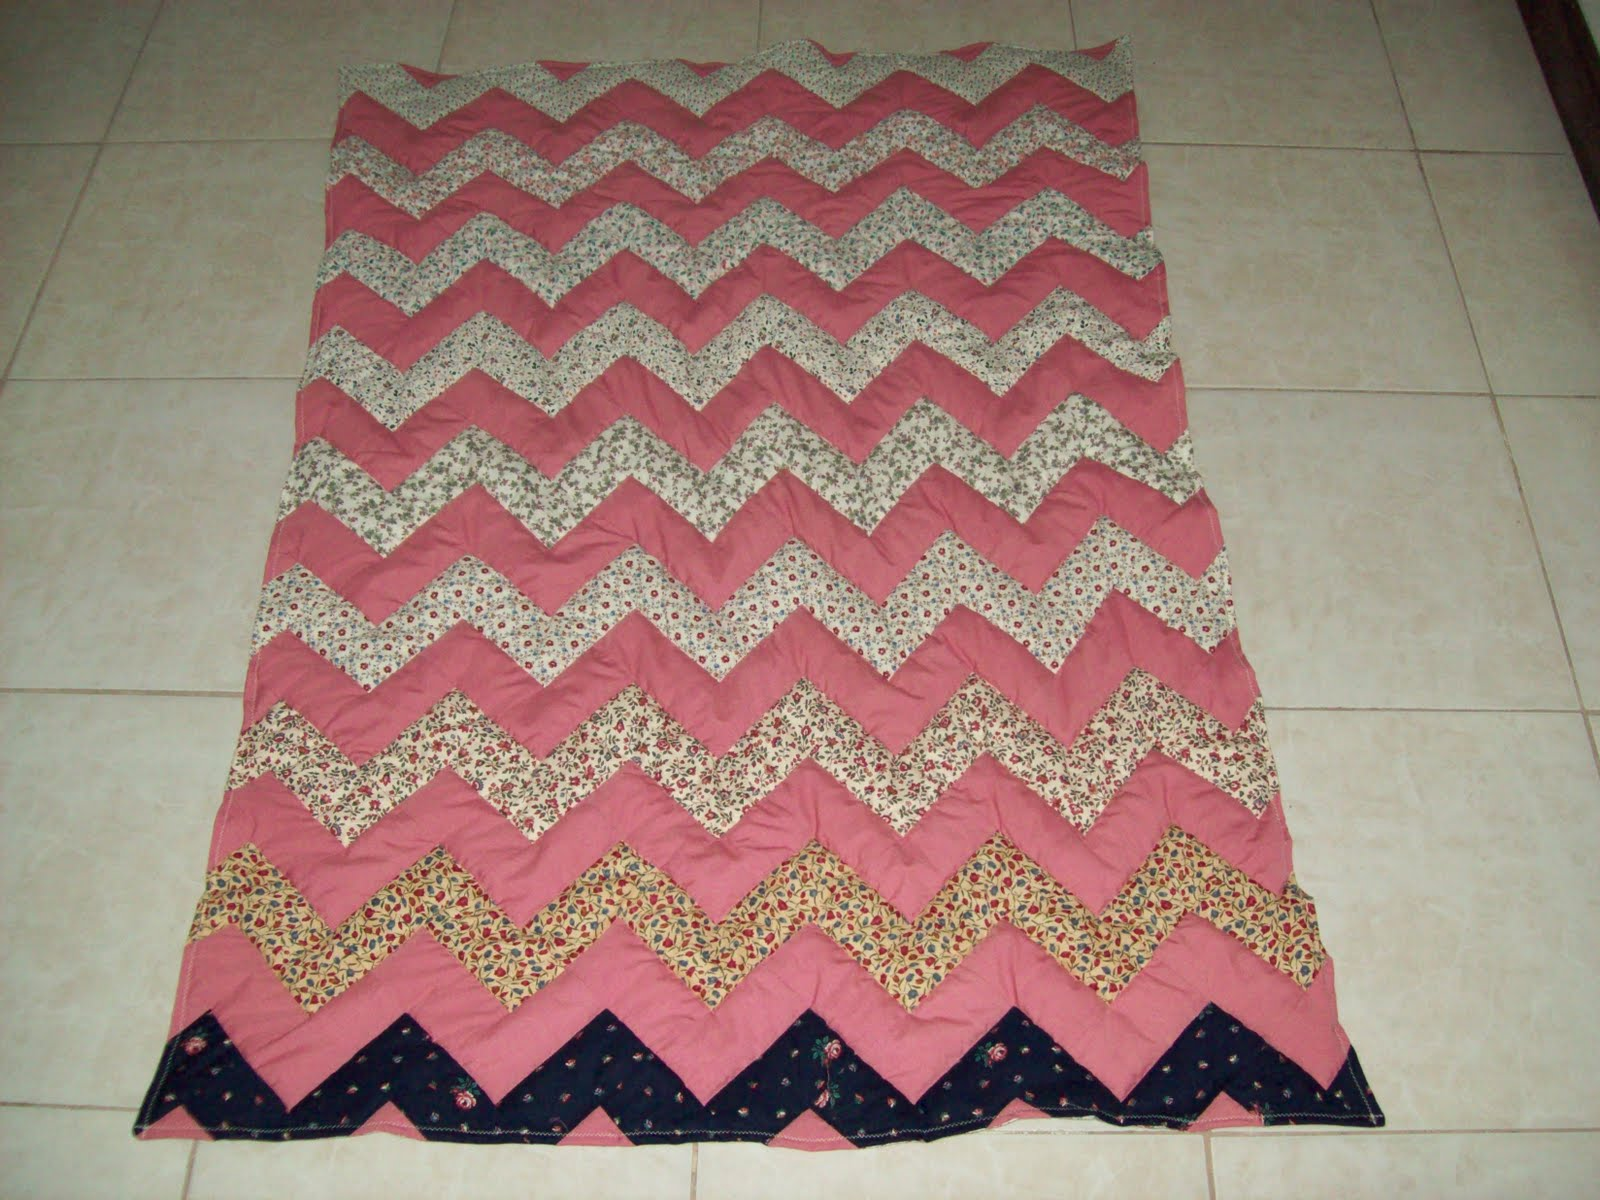 Zig Zag Quilt Pattern No Triangles : Sew Fun to Quilt!: No Triangle Zig Zag Quilt